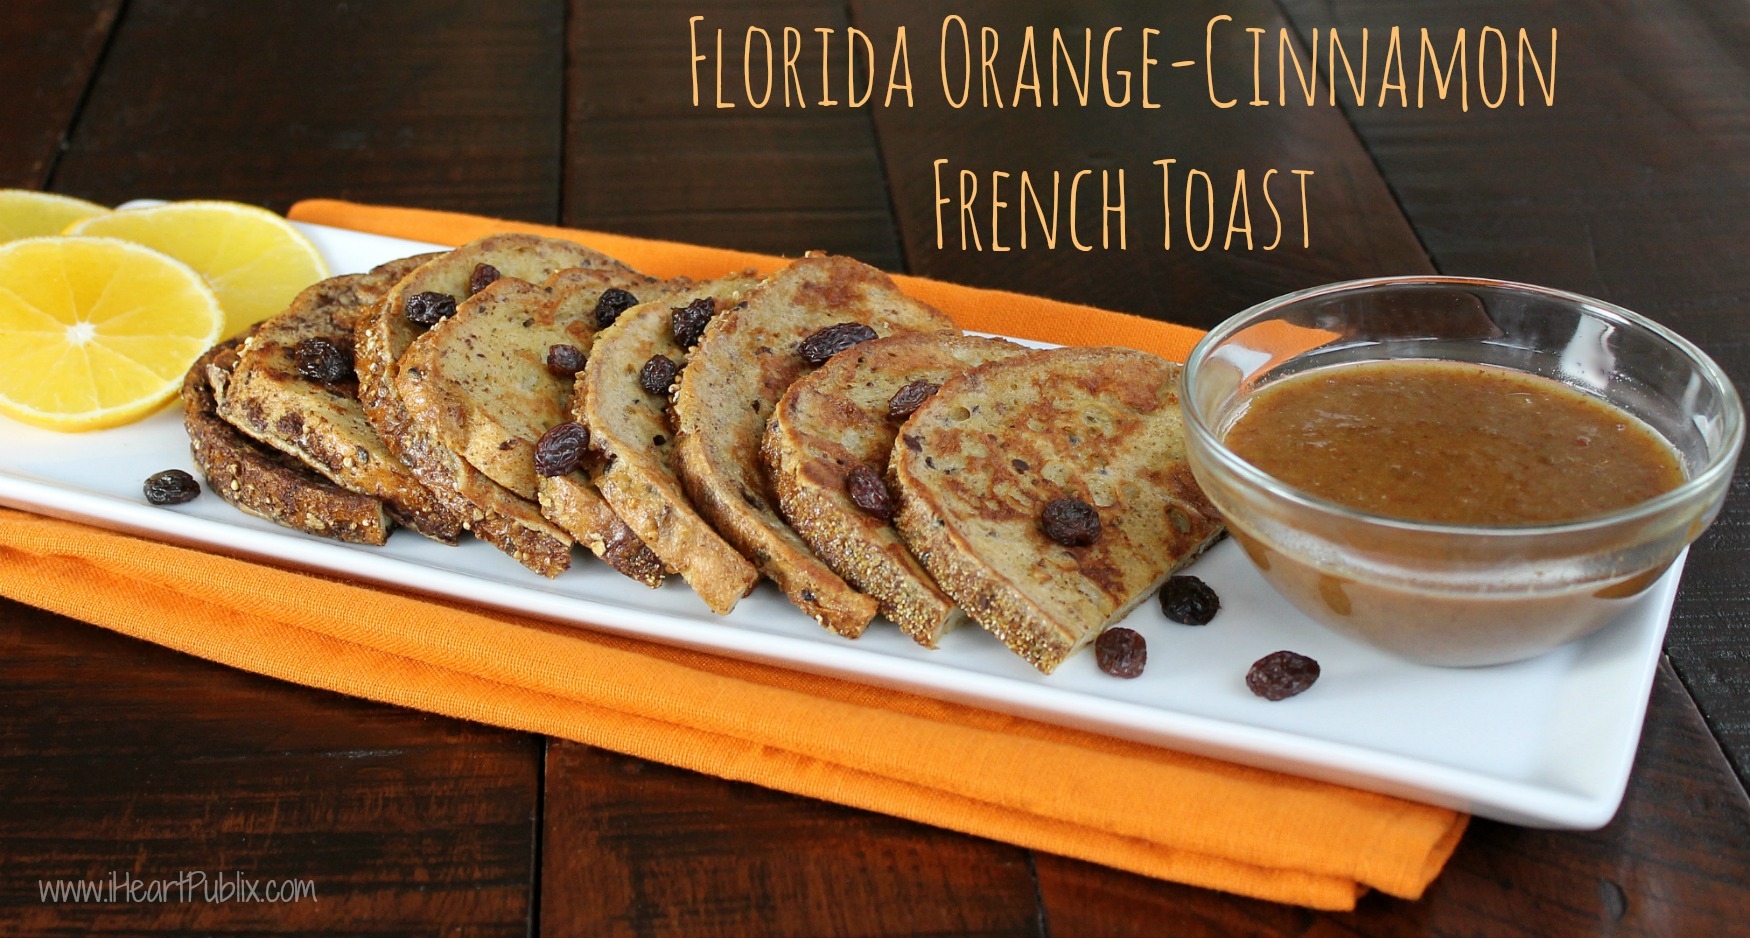 Florida Orange-Cinnamon French Toast